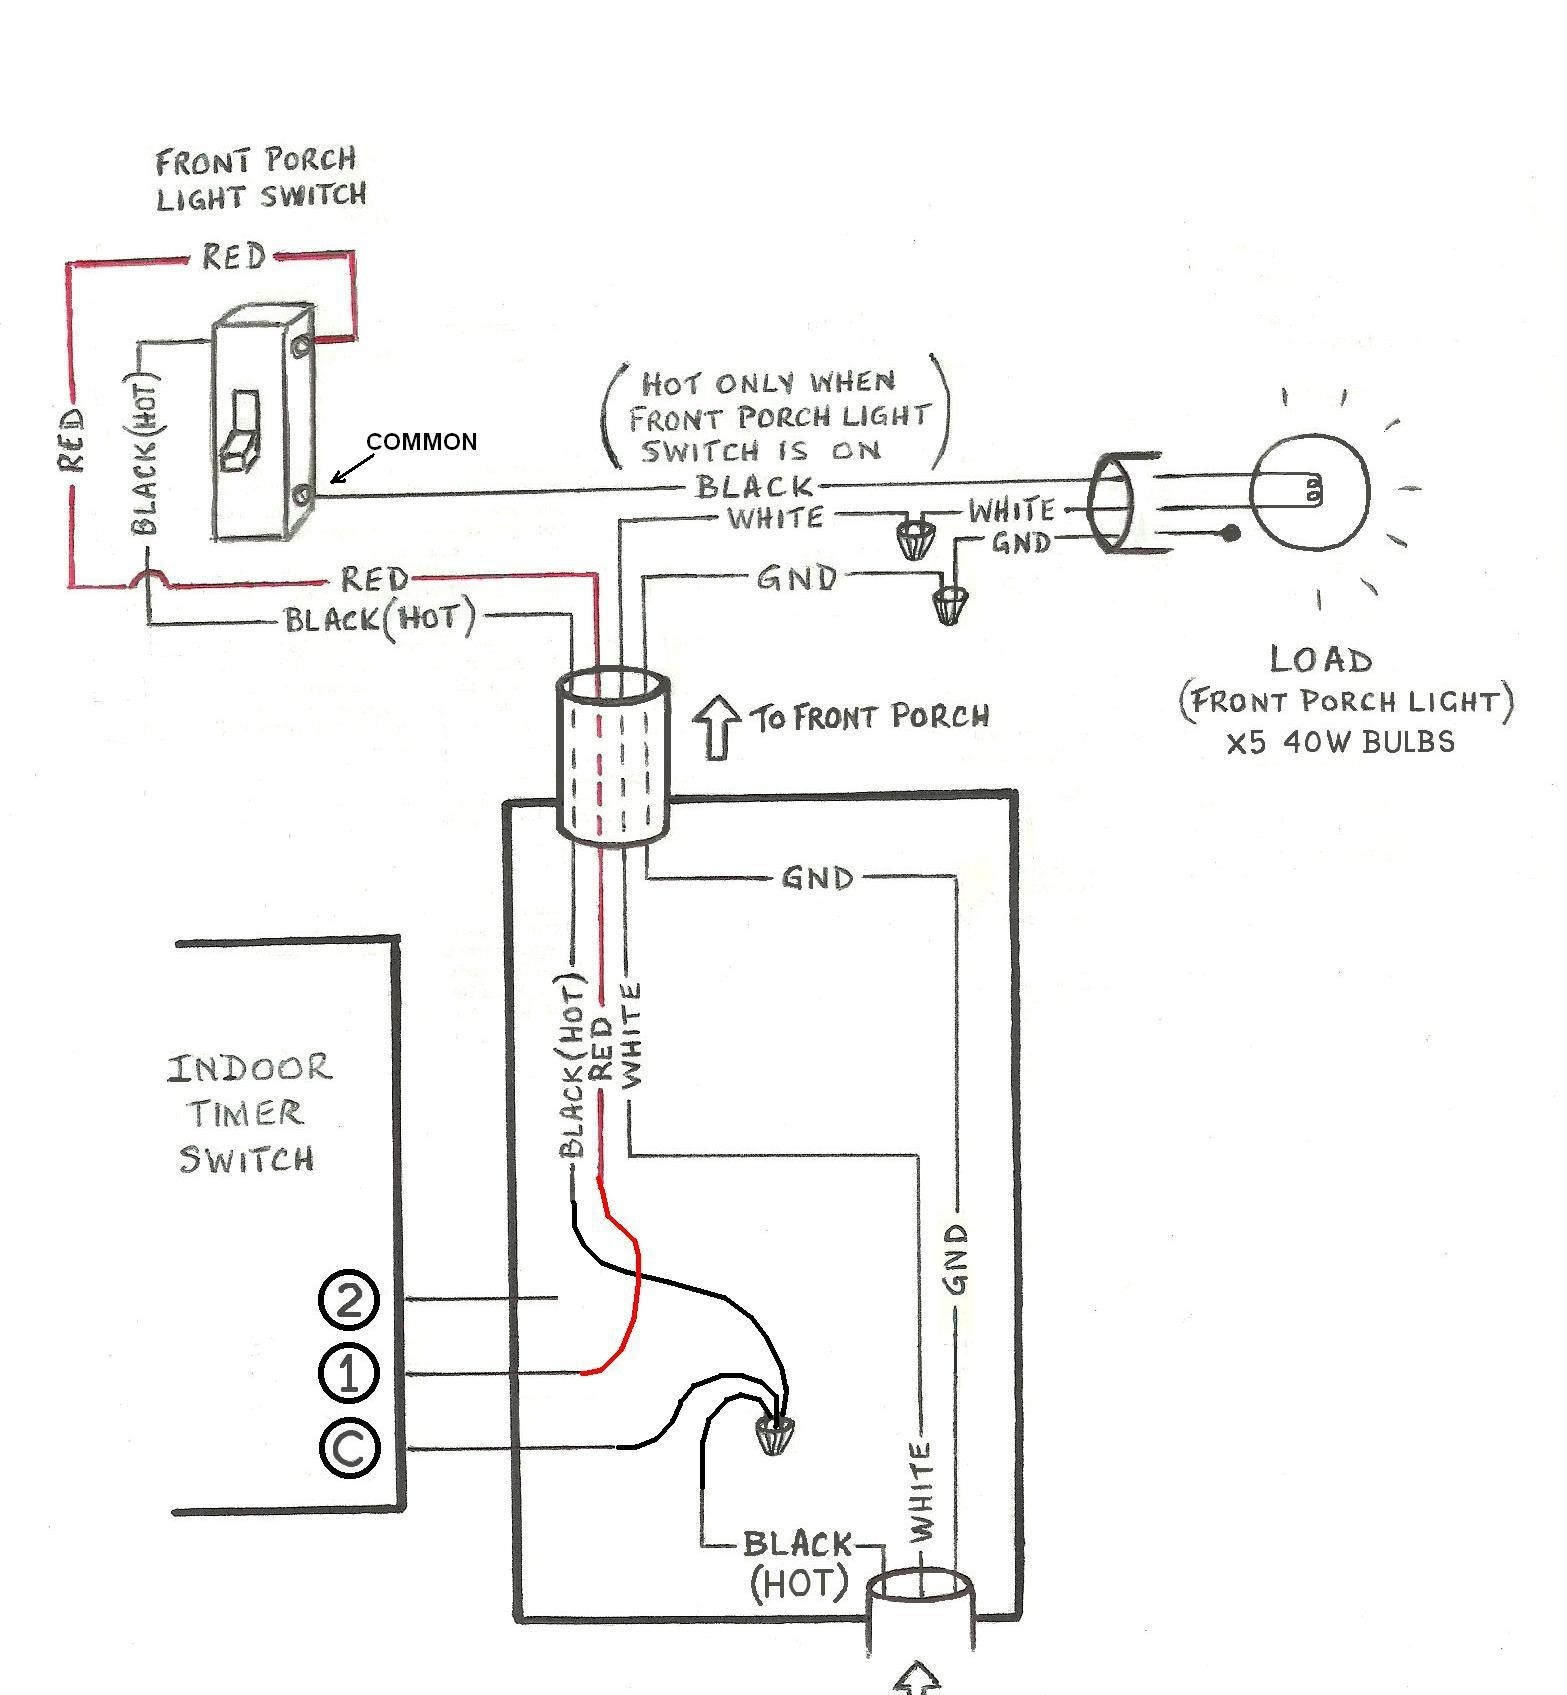 industrial 120v wiring diagrams lighted rocker switch wiring diagram 120v | free wiring ...